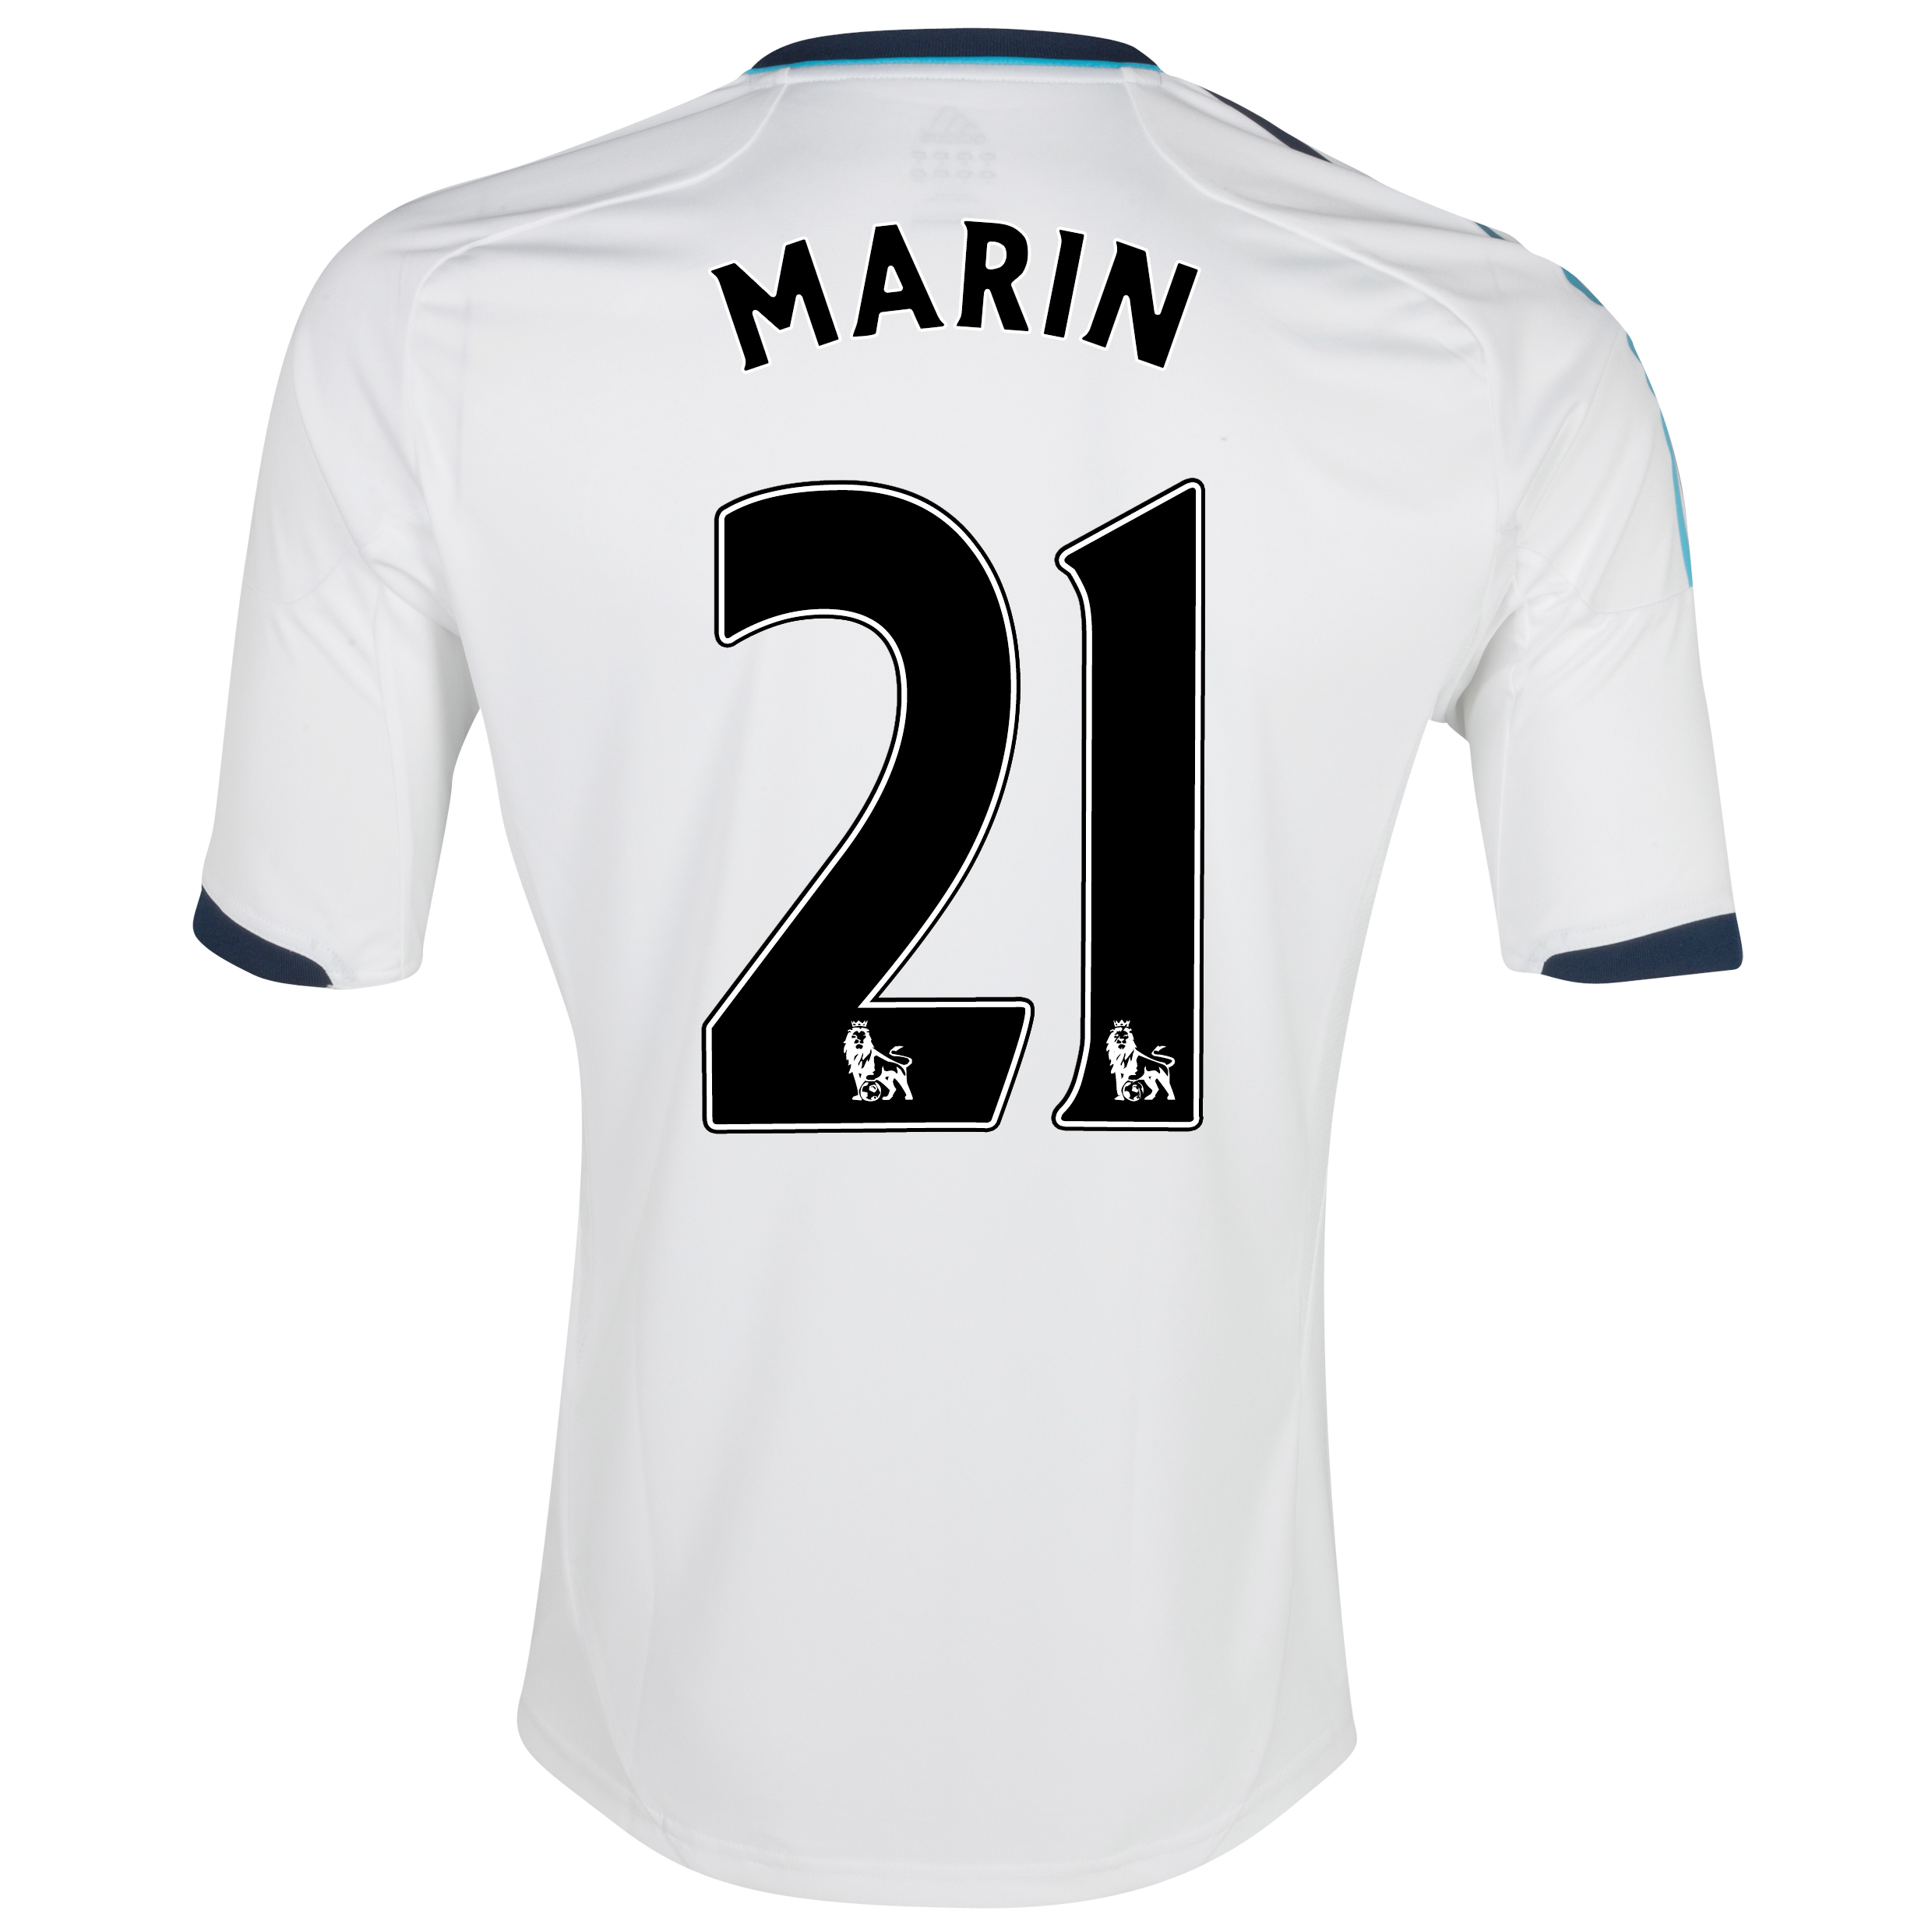 Chelsea Away Shirt 2012/13 - Kids with Marin 21 printing